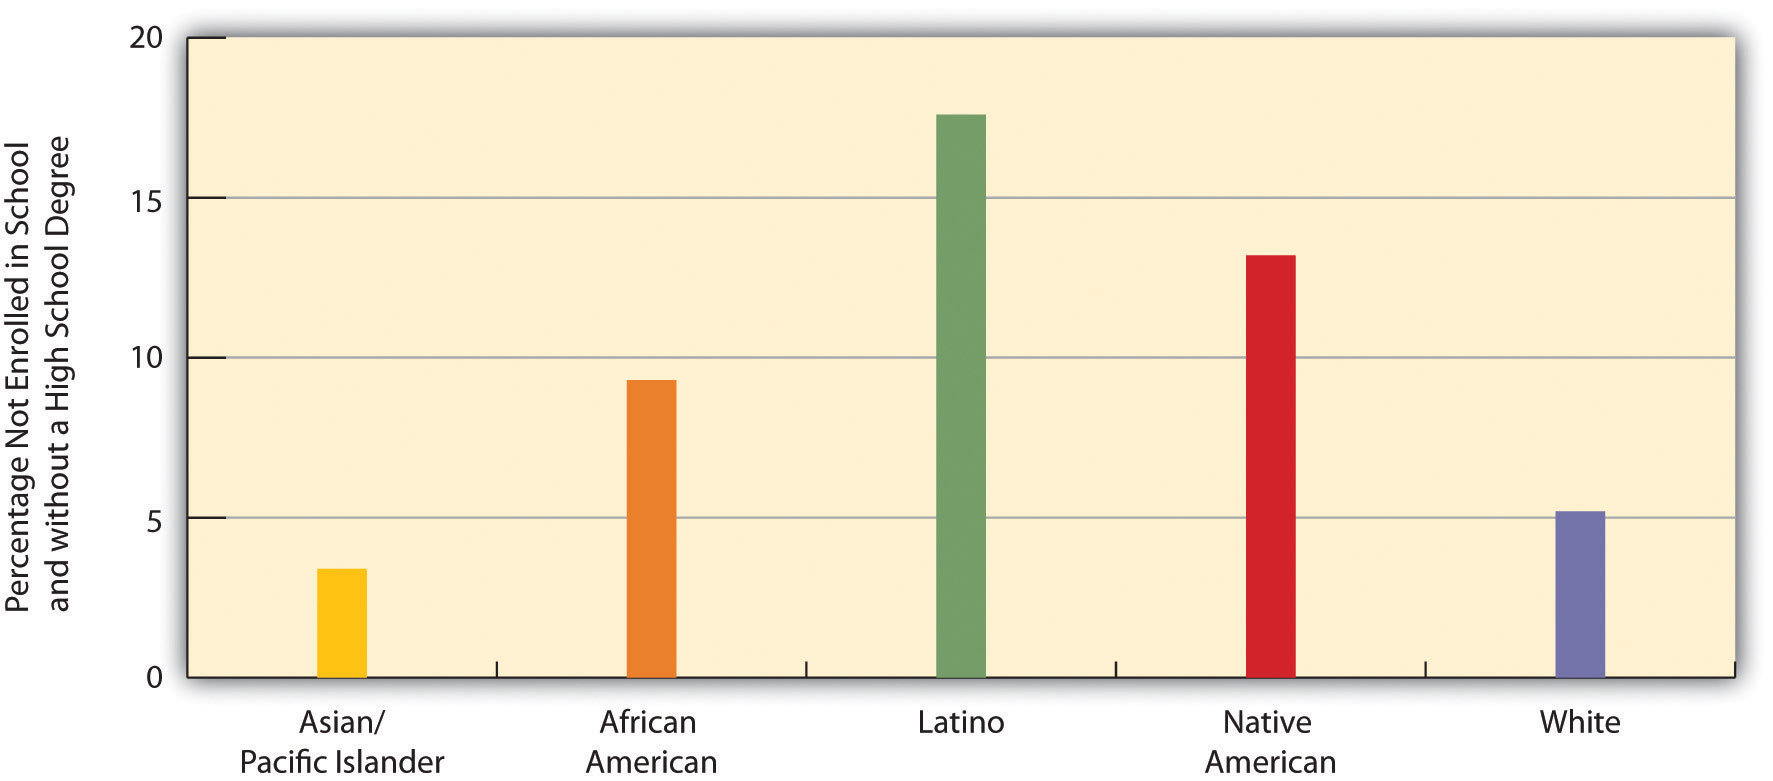 Race, Ethnicity, and High School Dropout Rate, Persons Ages 16-24, 2009 (Percentage Not Enrolled in School and without a High School Degree). The races most represented in this graph are Latino, Native American, and African American